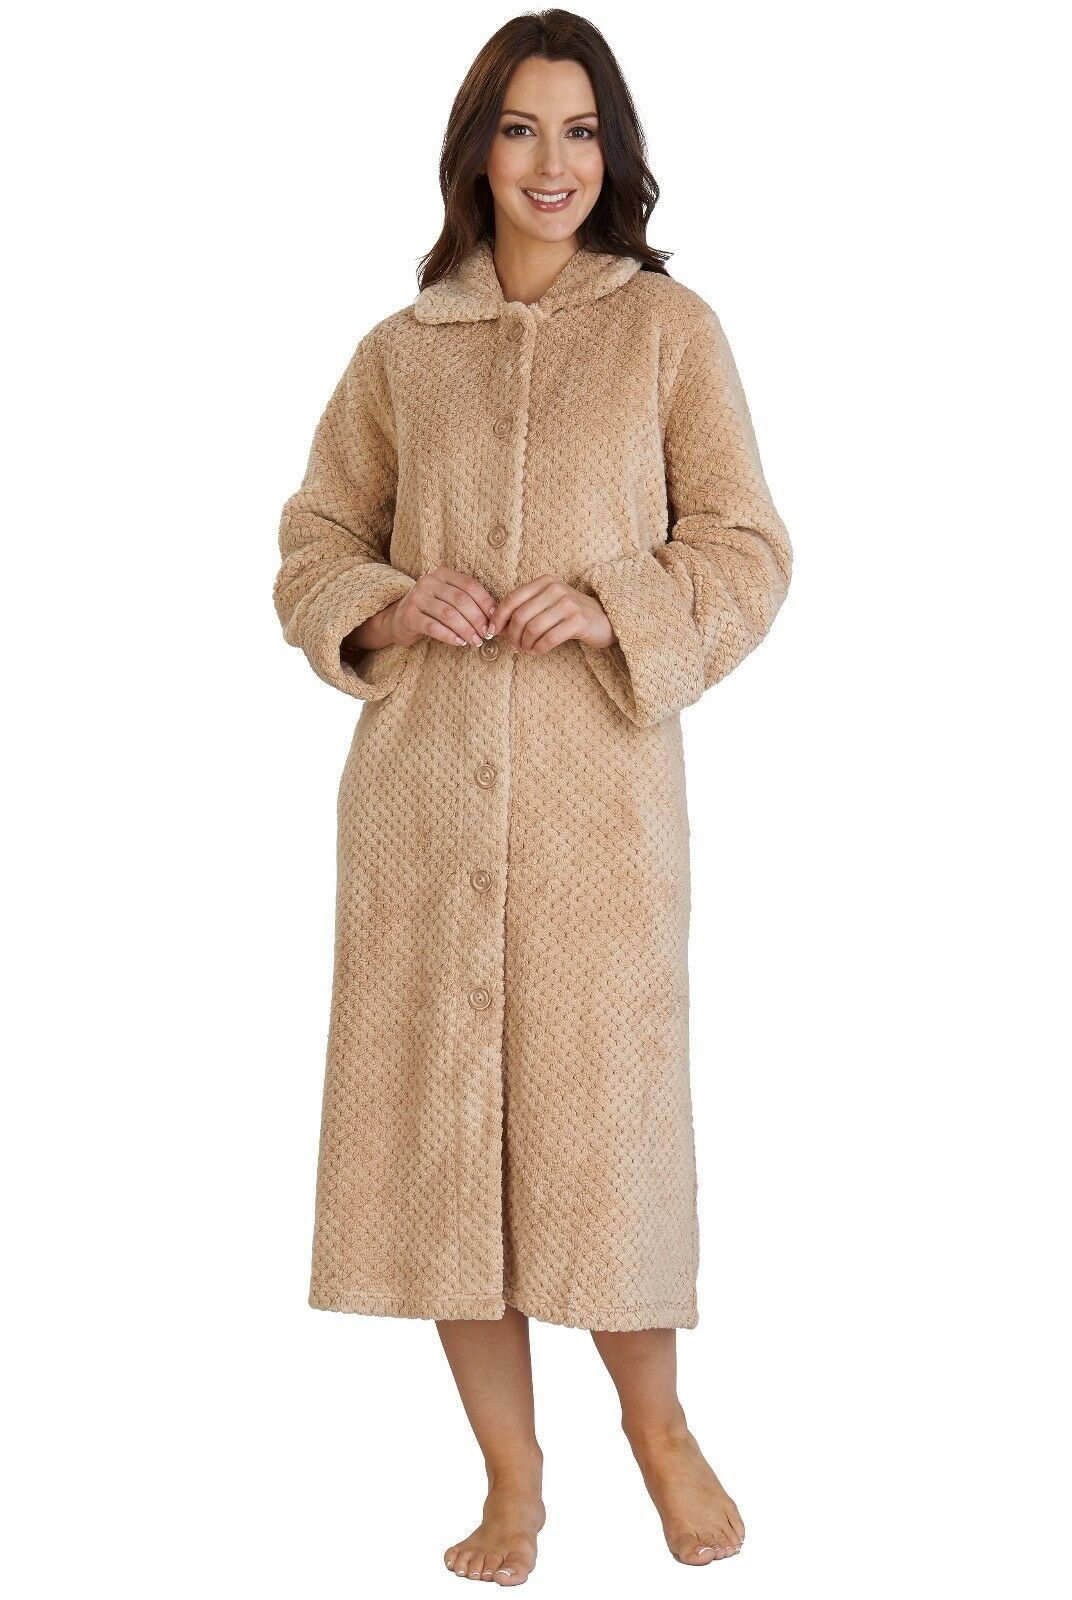 Slenderella Womens Button Dressing Gown. Luxury Super Soft Waffle Fleece. HC2341